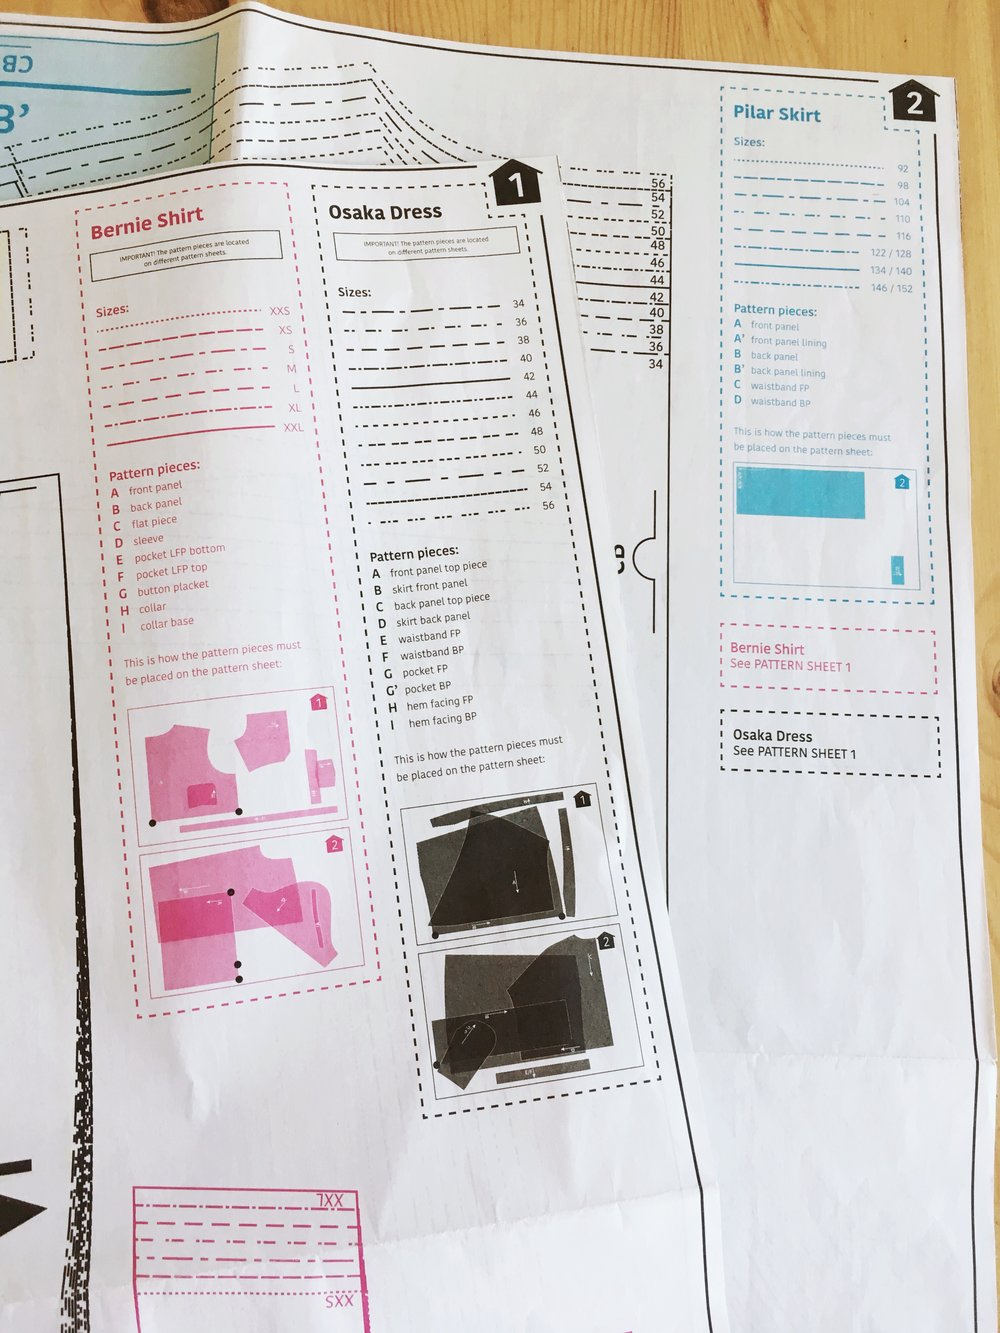 Pattern outlines are color coded. Here the Bernie shirt is outlined in pink and the color coded diagram shows the location and orientation of each pattern piece. Bernie is continued on page 2